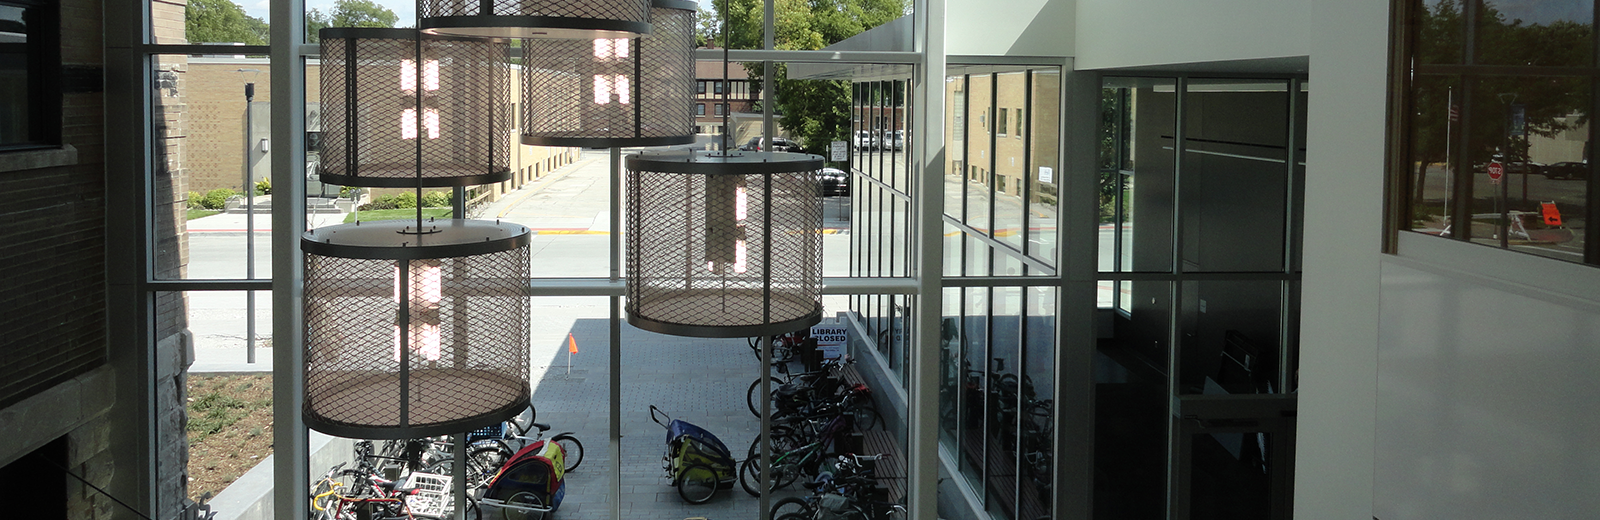 Bike racks seen through chandeliers and glass of Ames Pubic Library